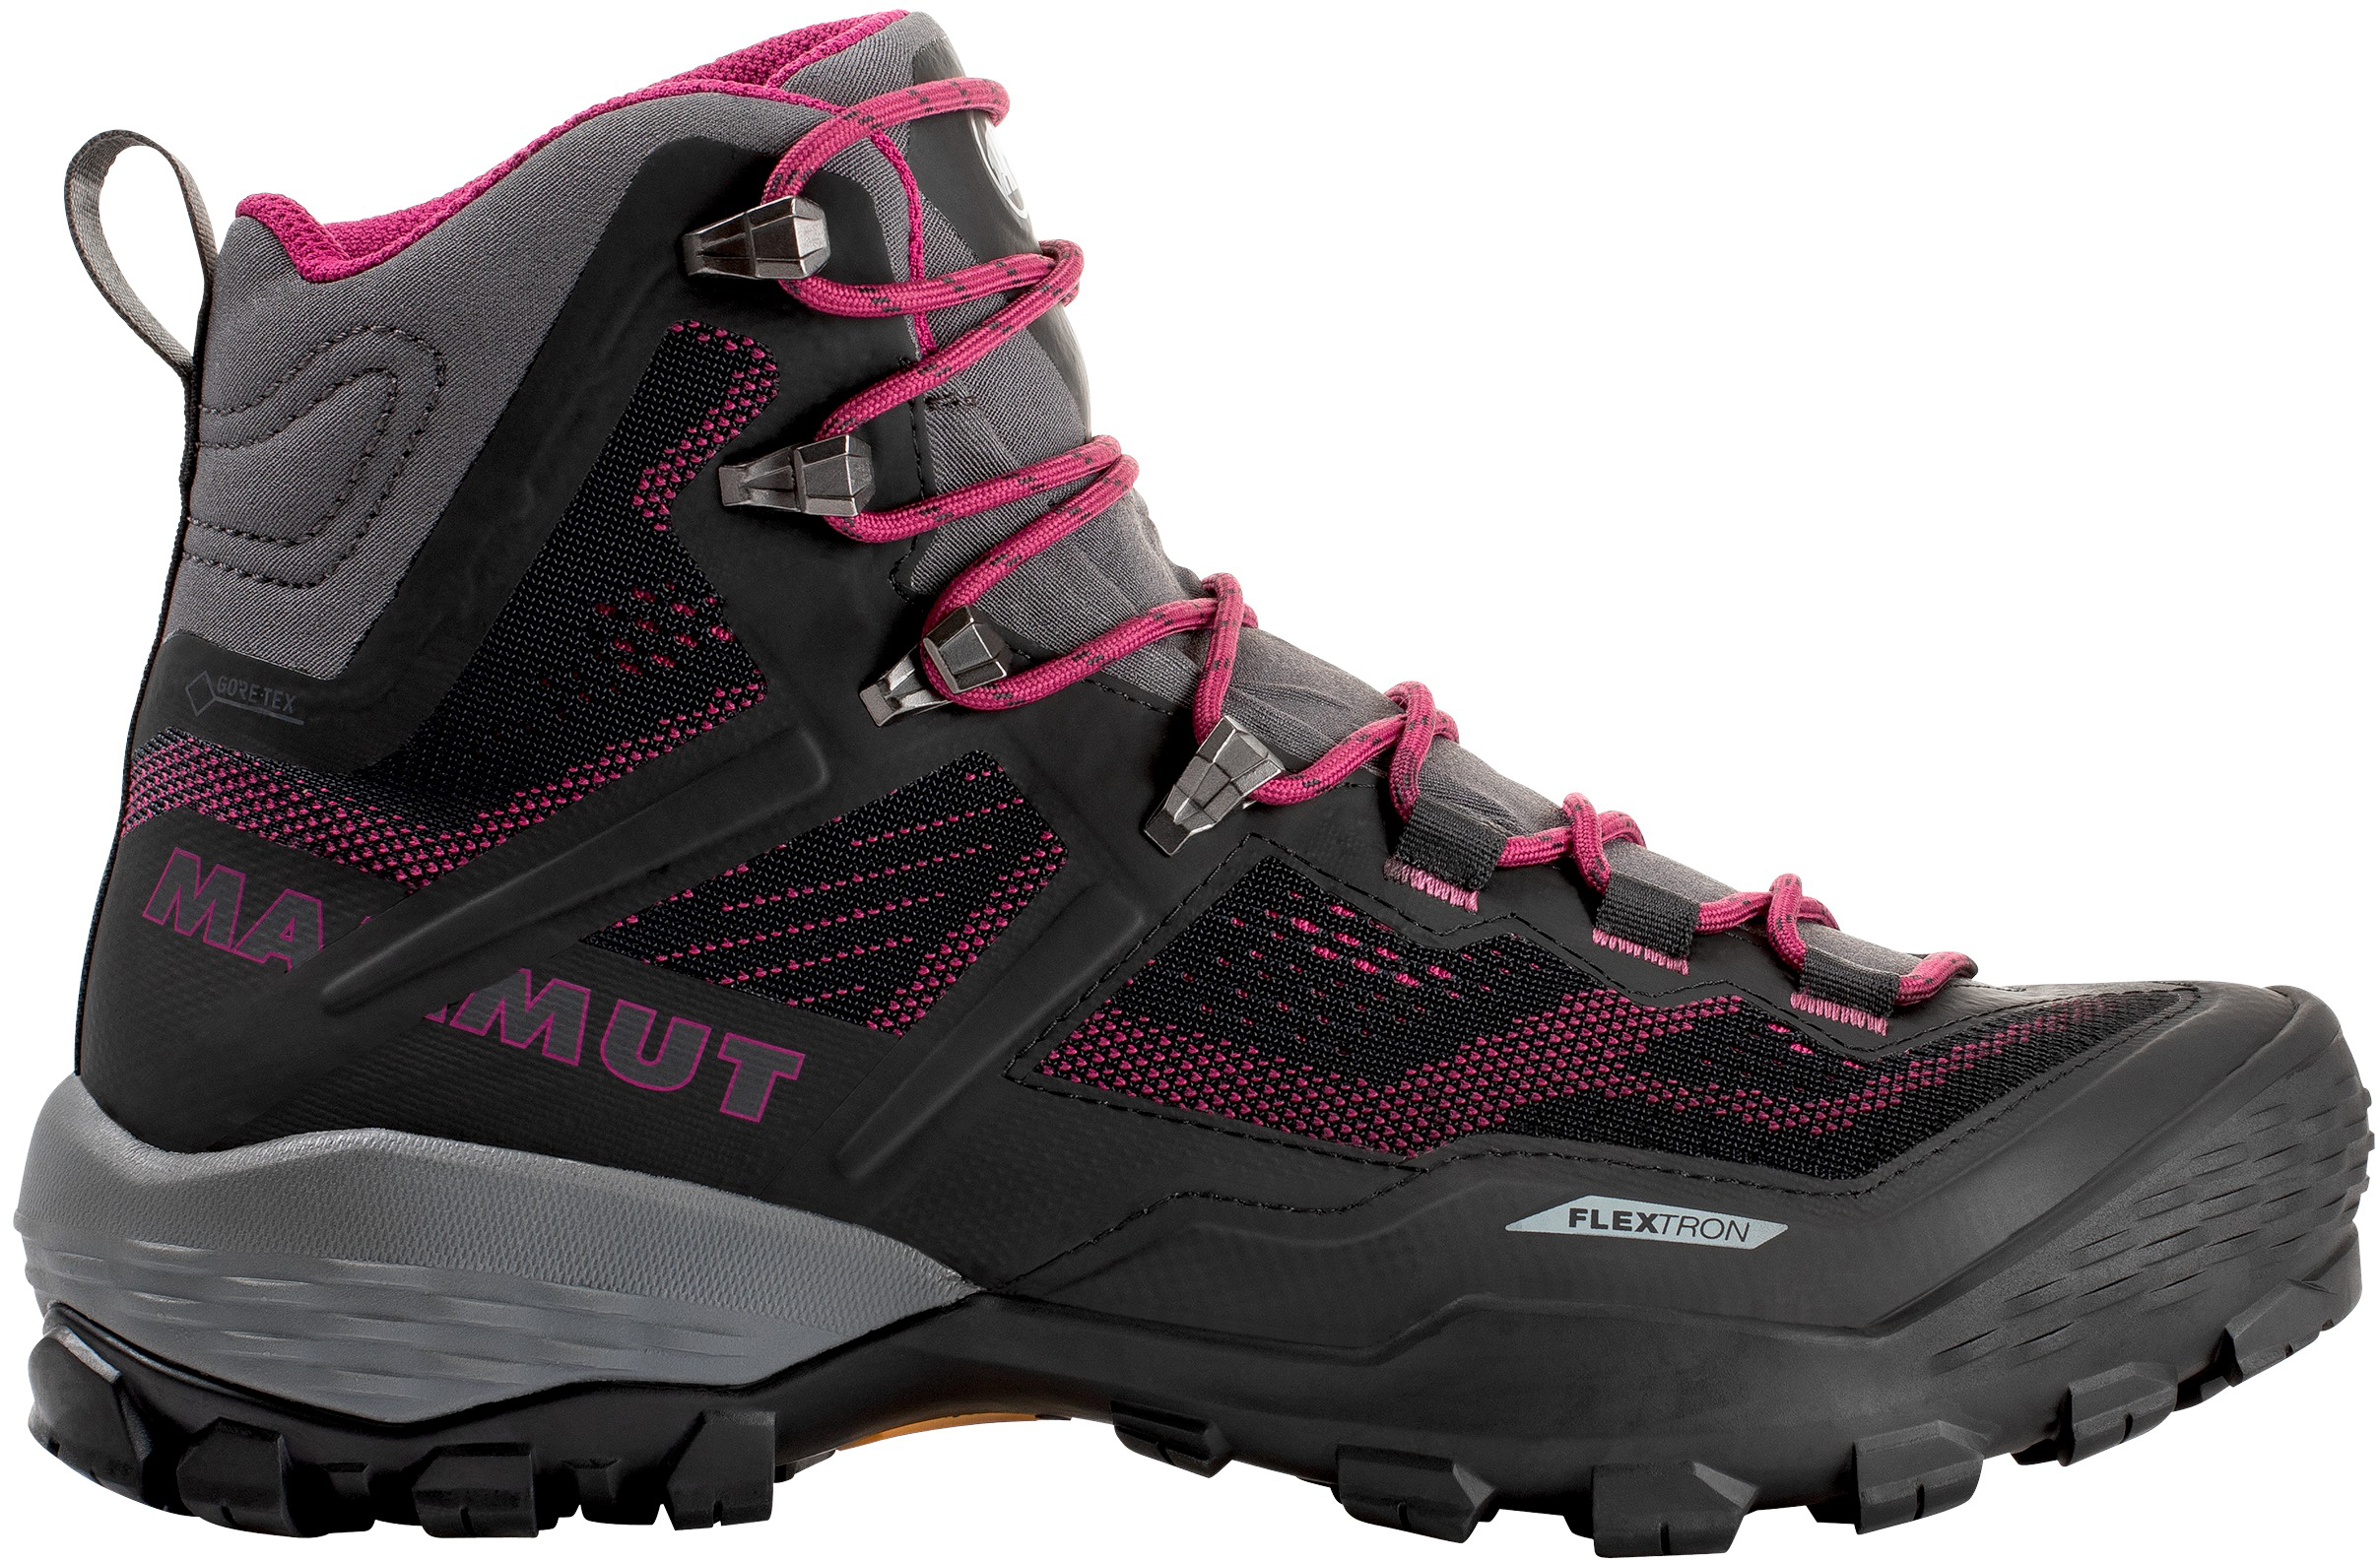 2eb1dd8e7972 Mammut Ducan High Gore-Tex Hiking Boots - Women s